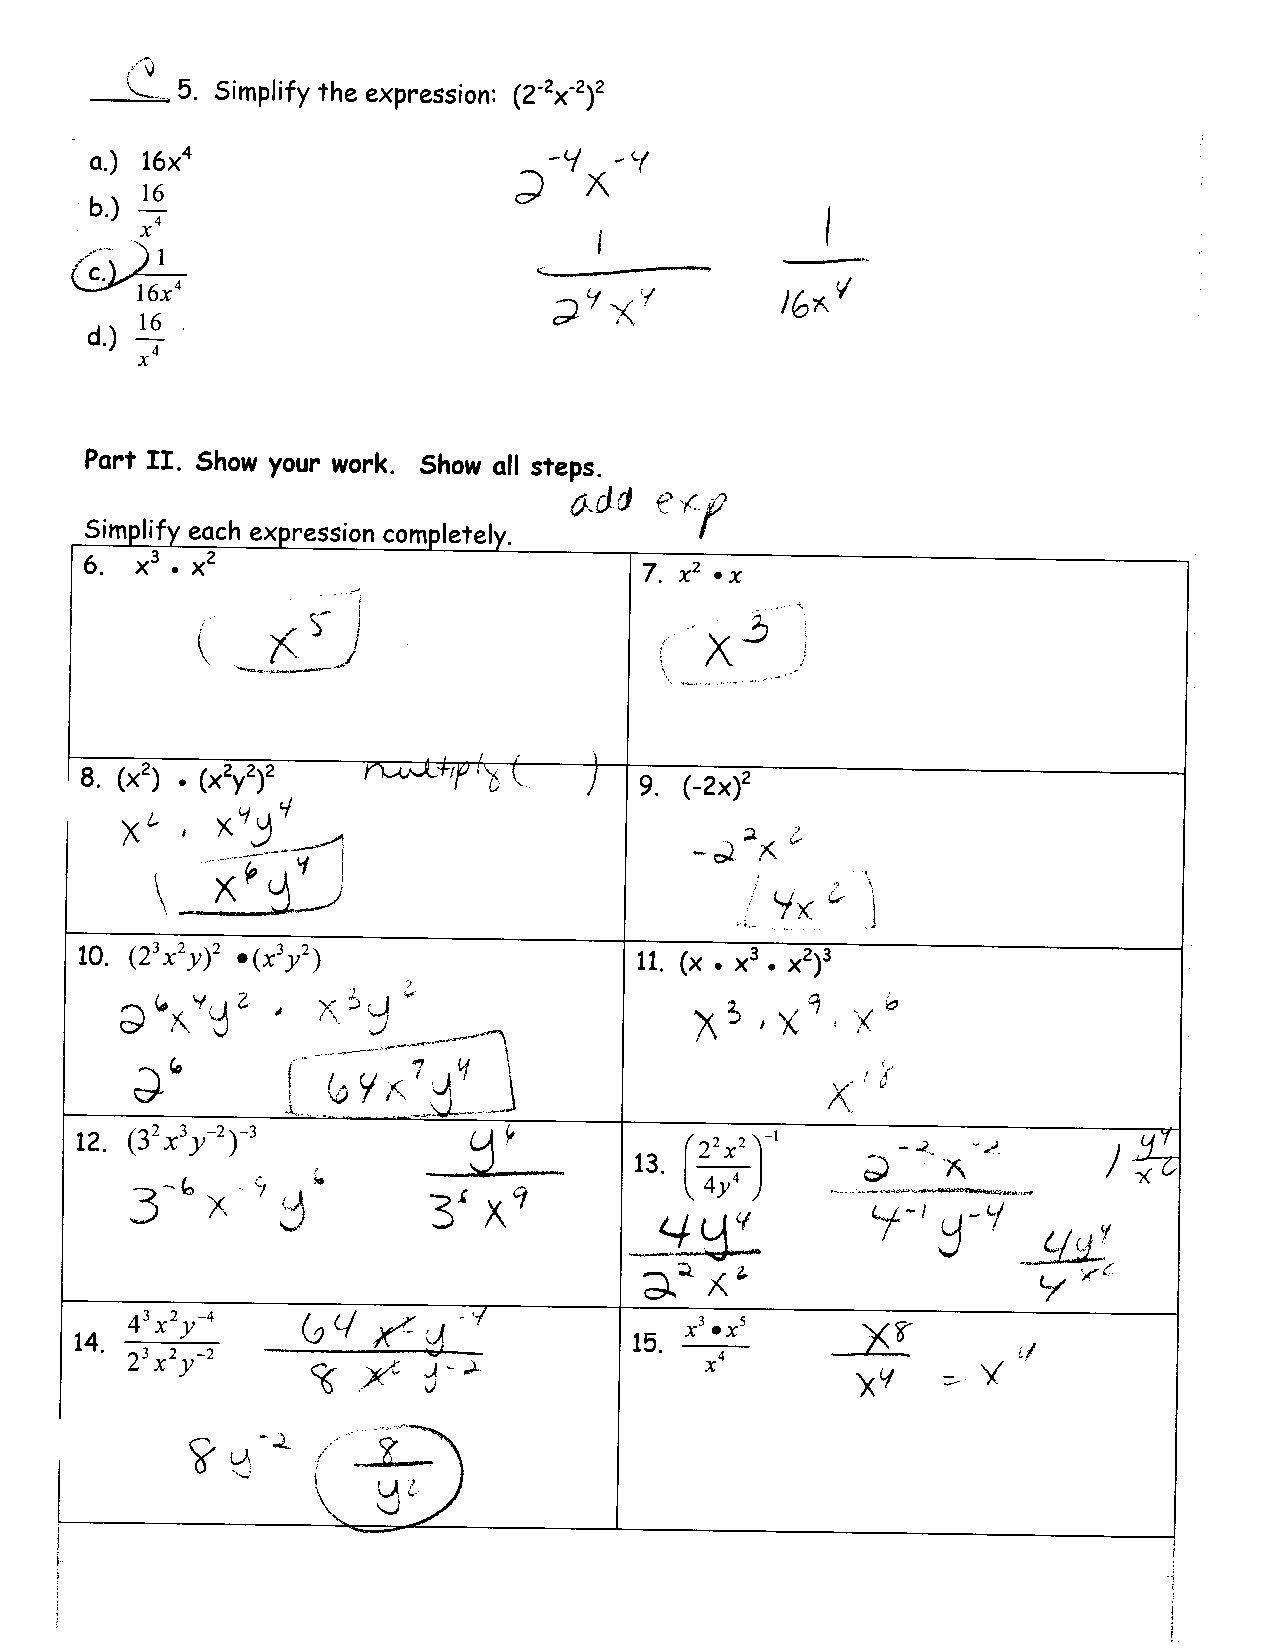 Chapter 7 Cell Structure And Function Worksheet Answer Key